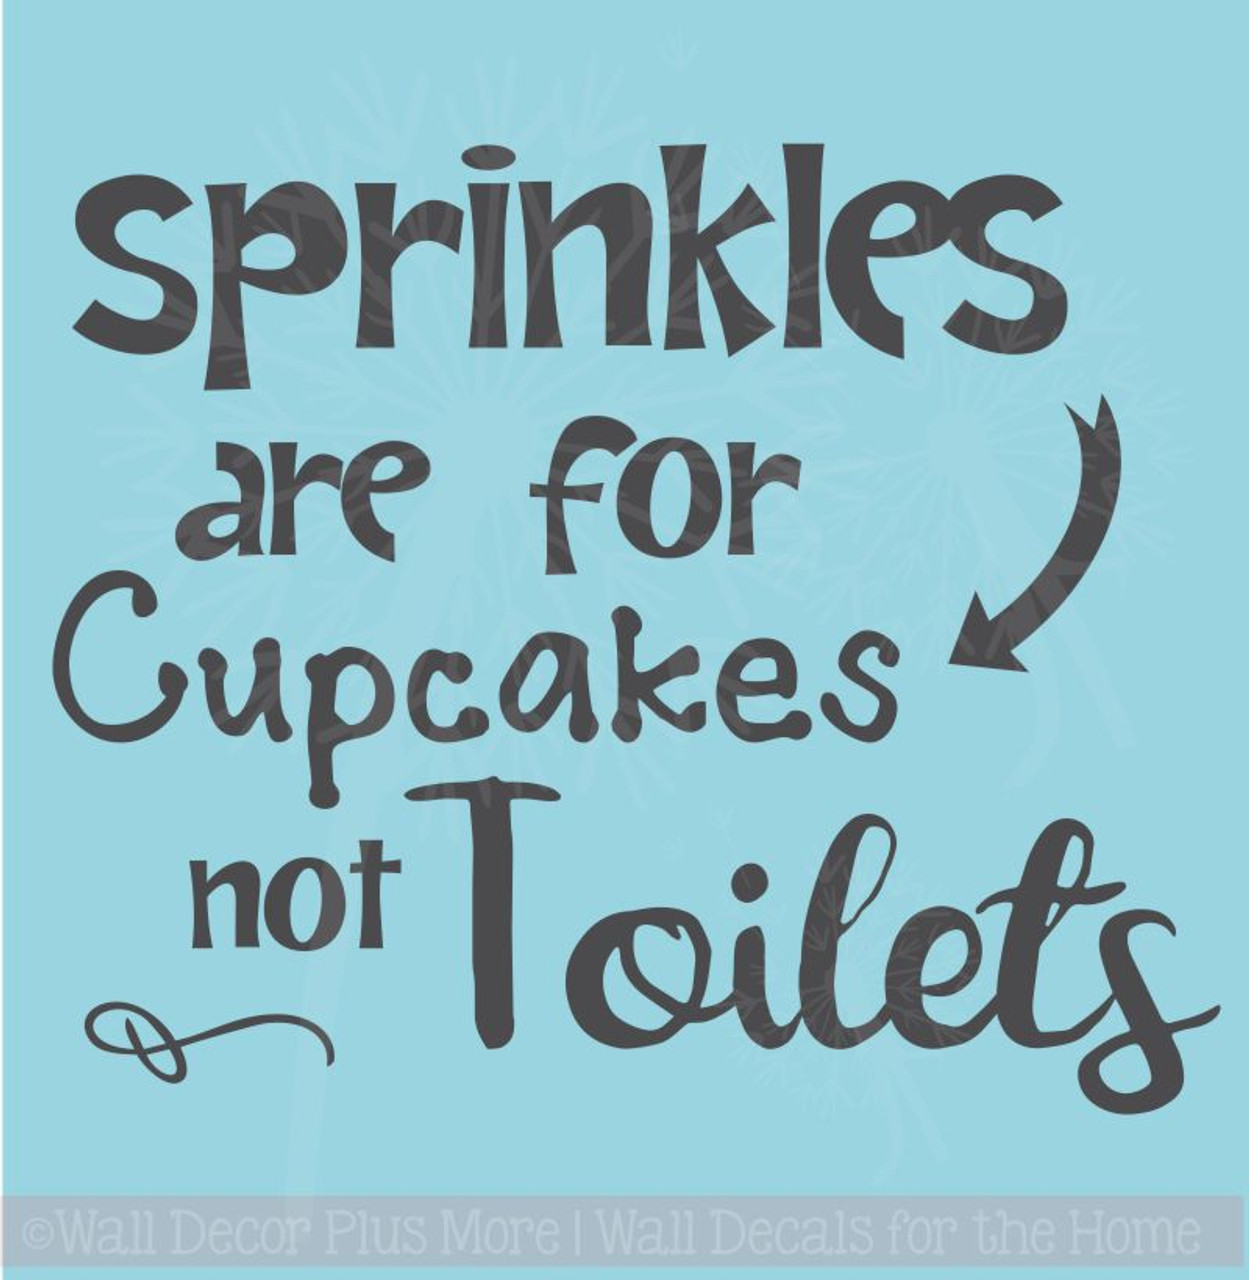 Watercolor Floral Funny Bathroom Decor Bathroom Sign Sprinkles Are For Cupcakes Not Toilet Seats Bathroom Sign Bathroom Printable Art